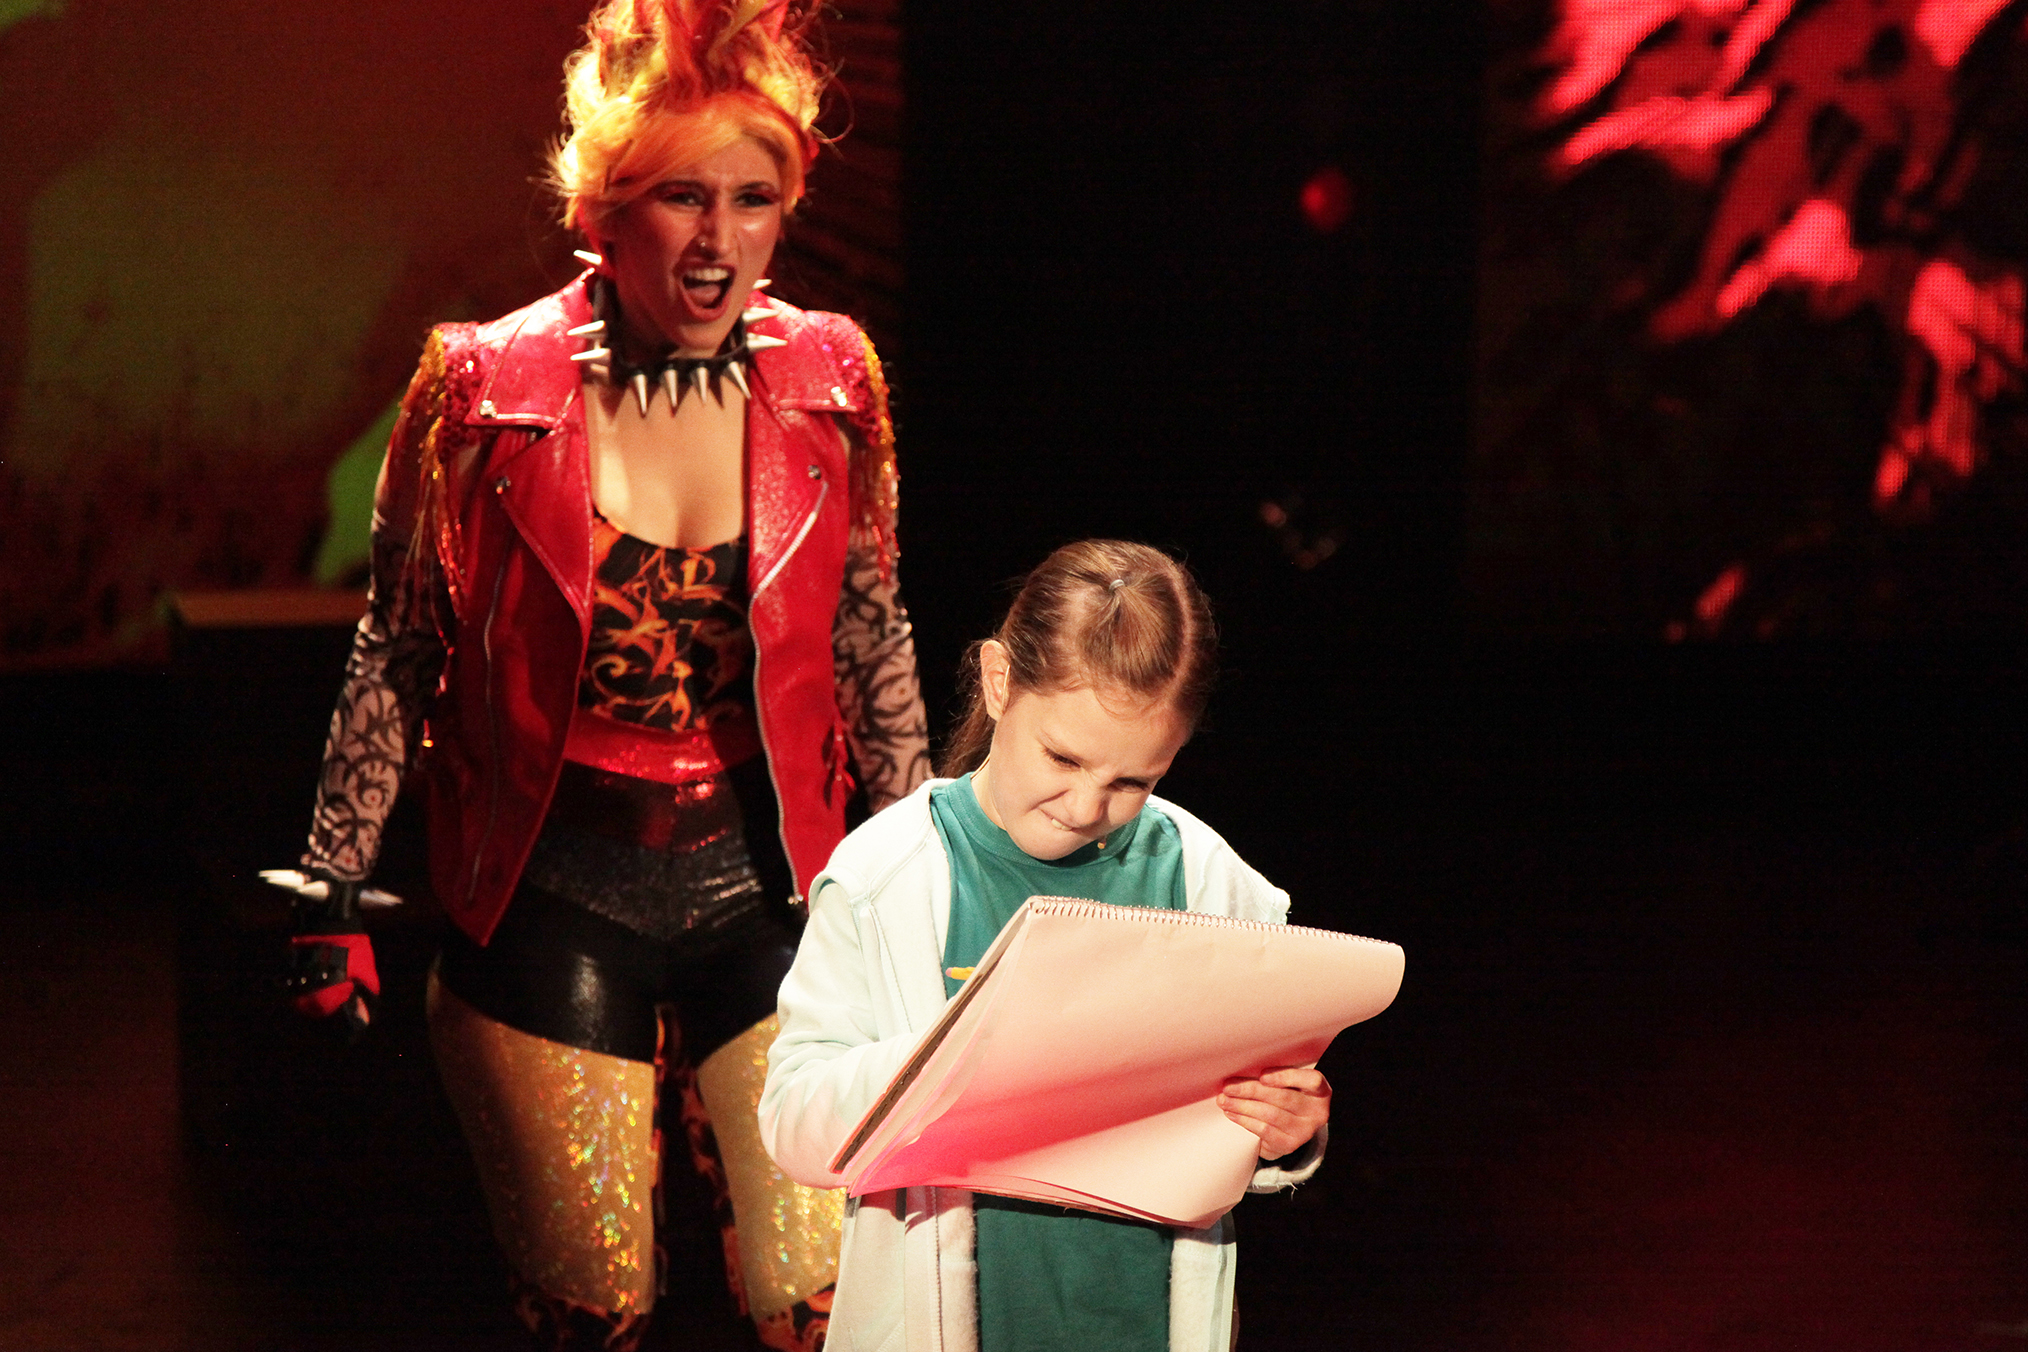 a girl writes on a piece of paper while a performer stands behind her